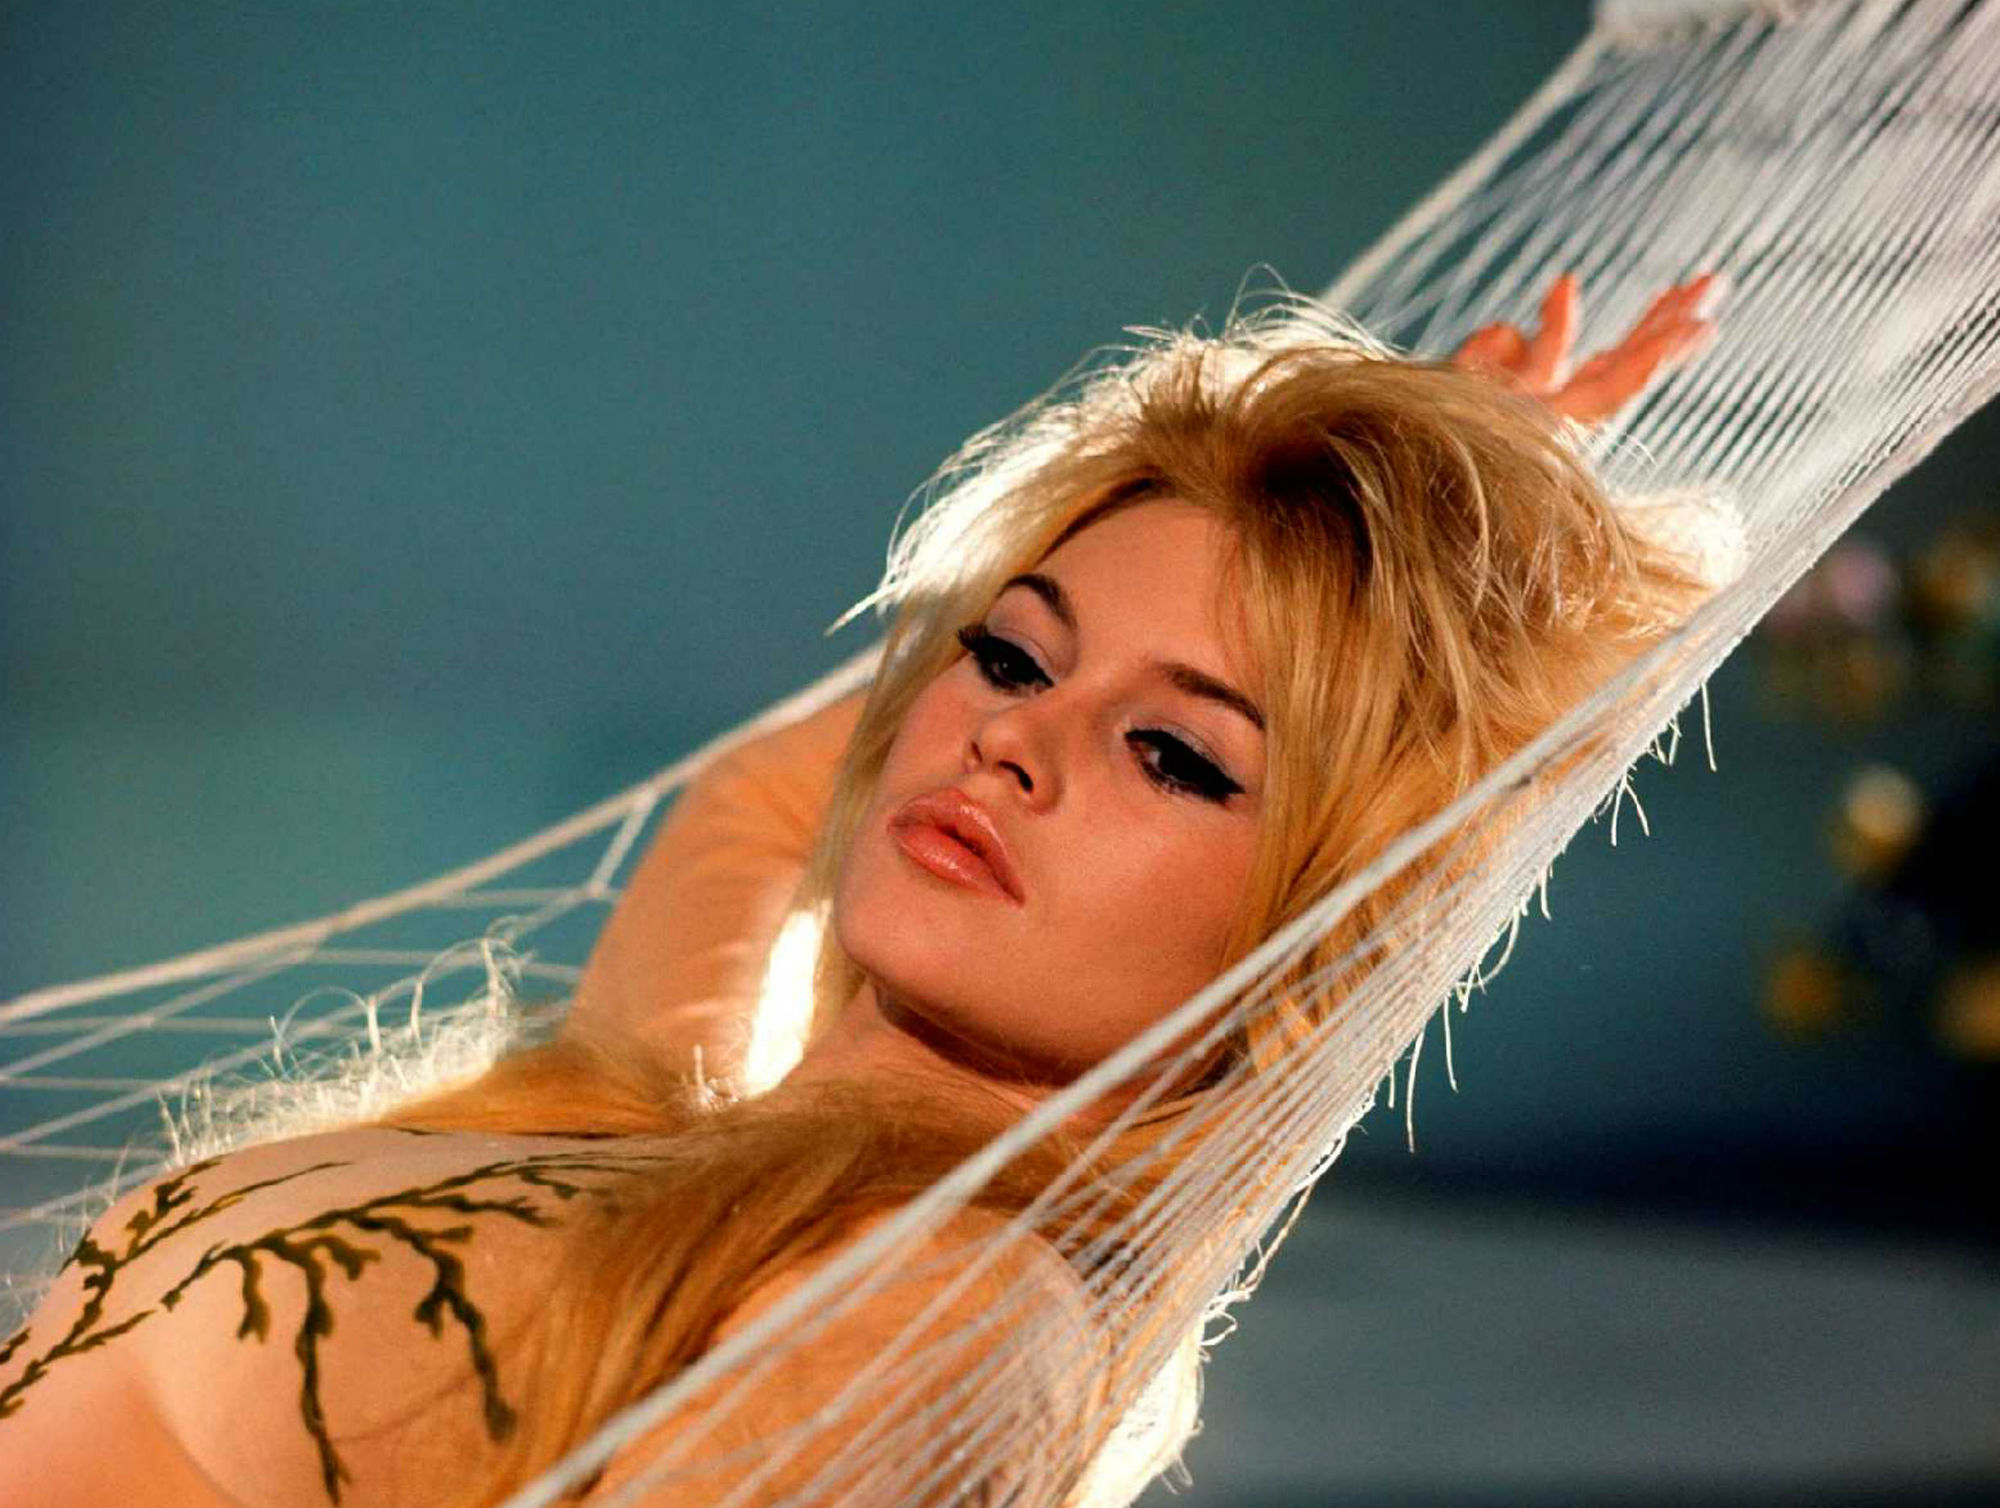 brigitte bardot cinema erotic french